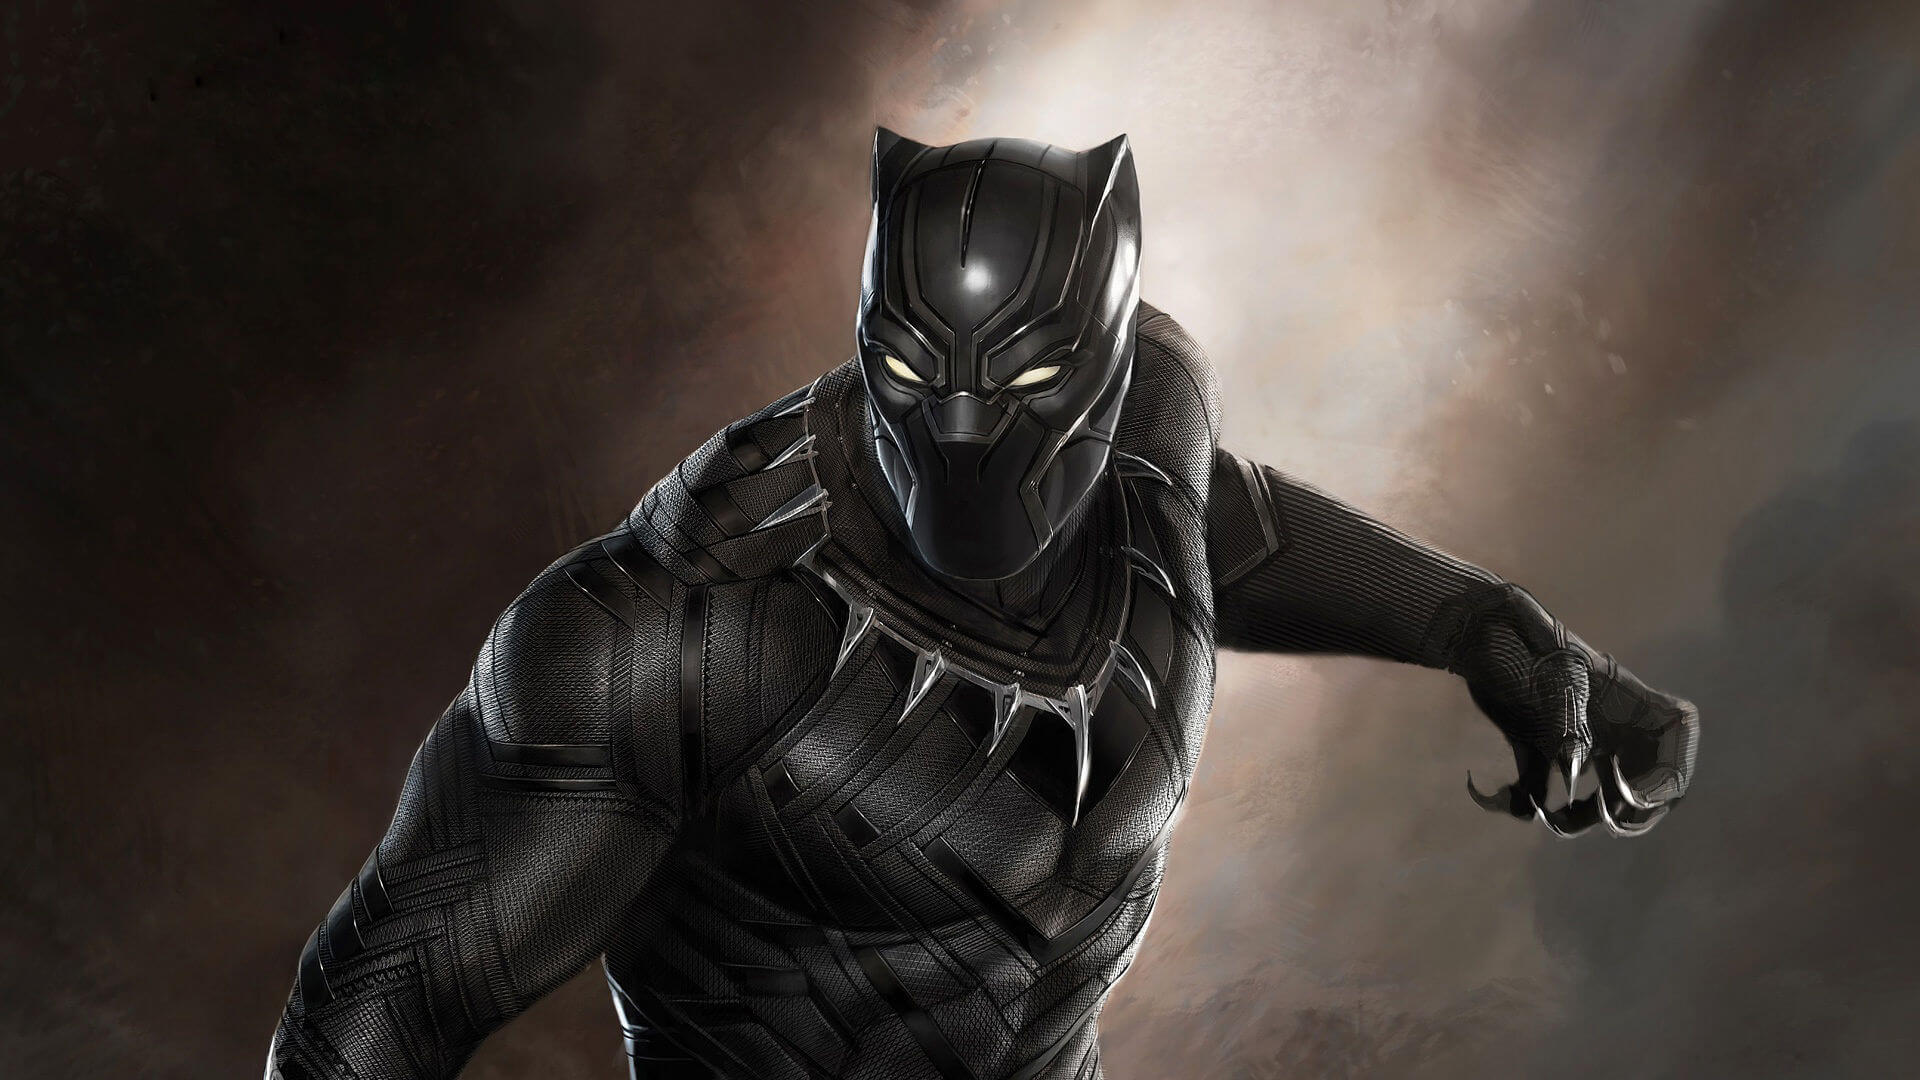 Why a Lot is Riding on Black Panther After Thor: Ragnarok